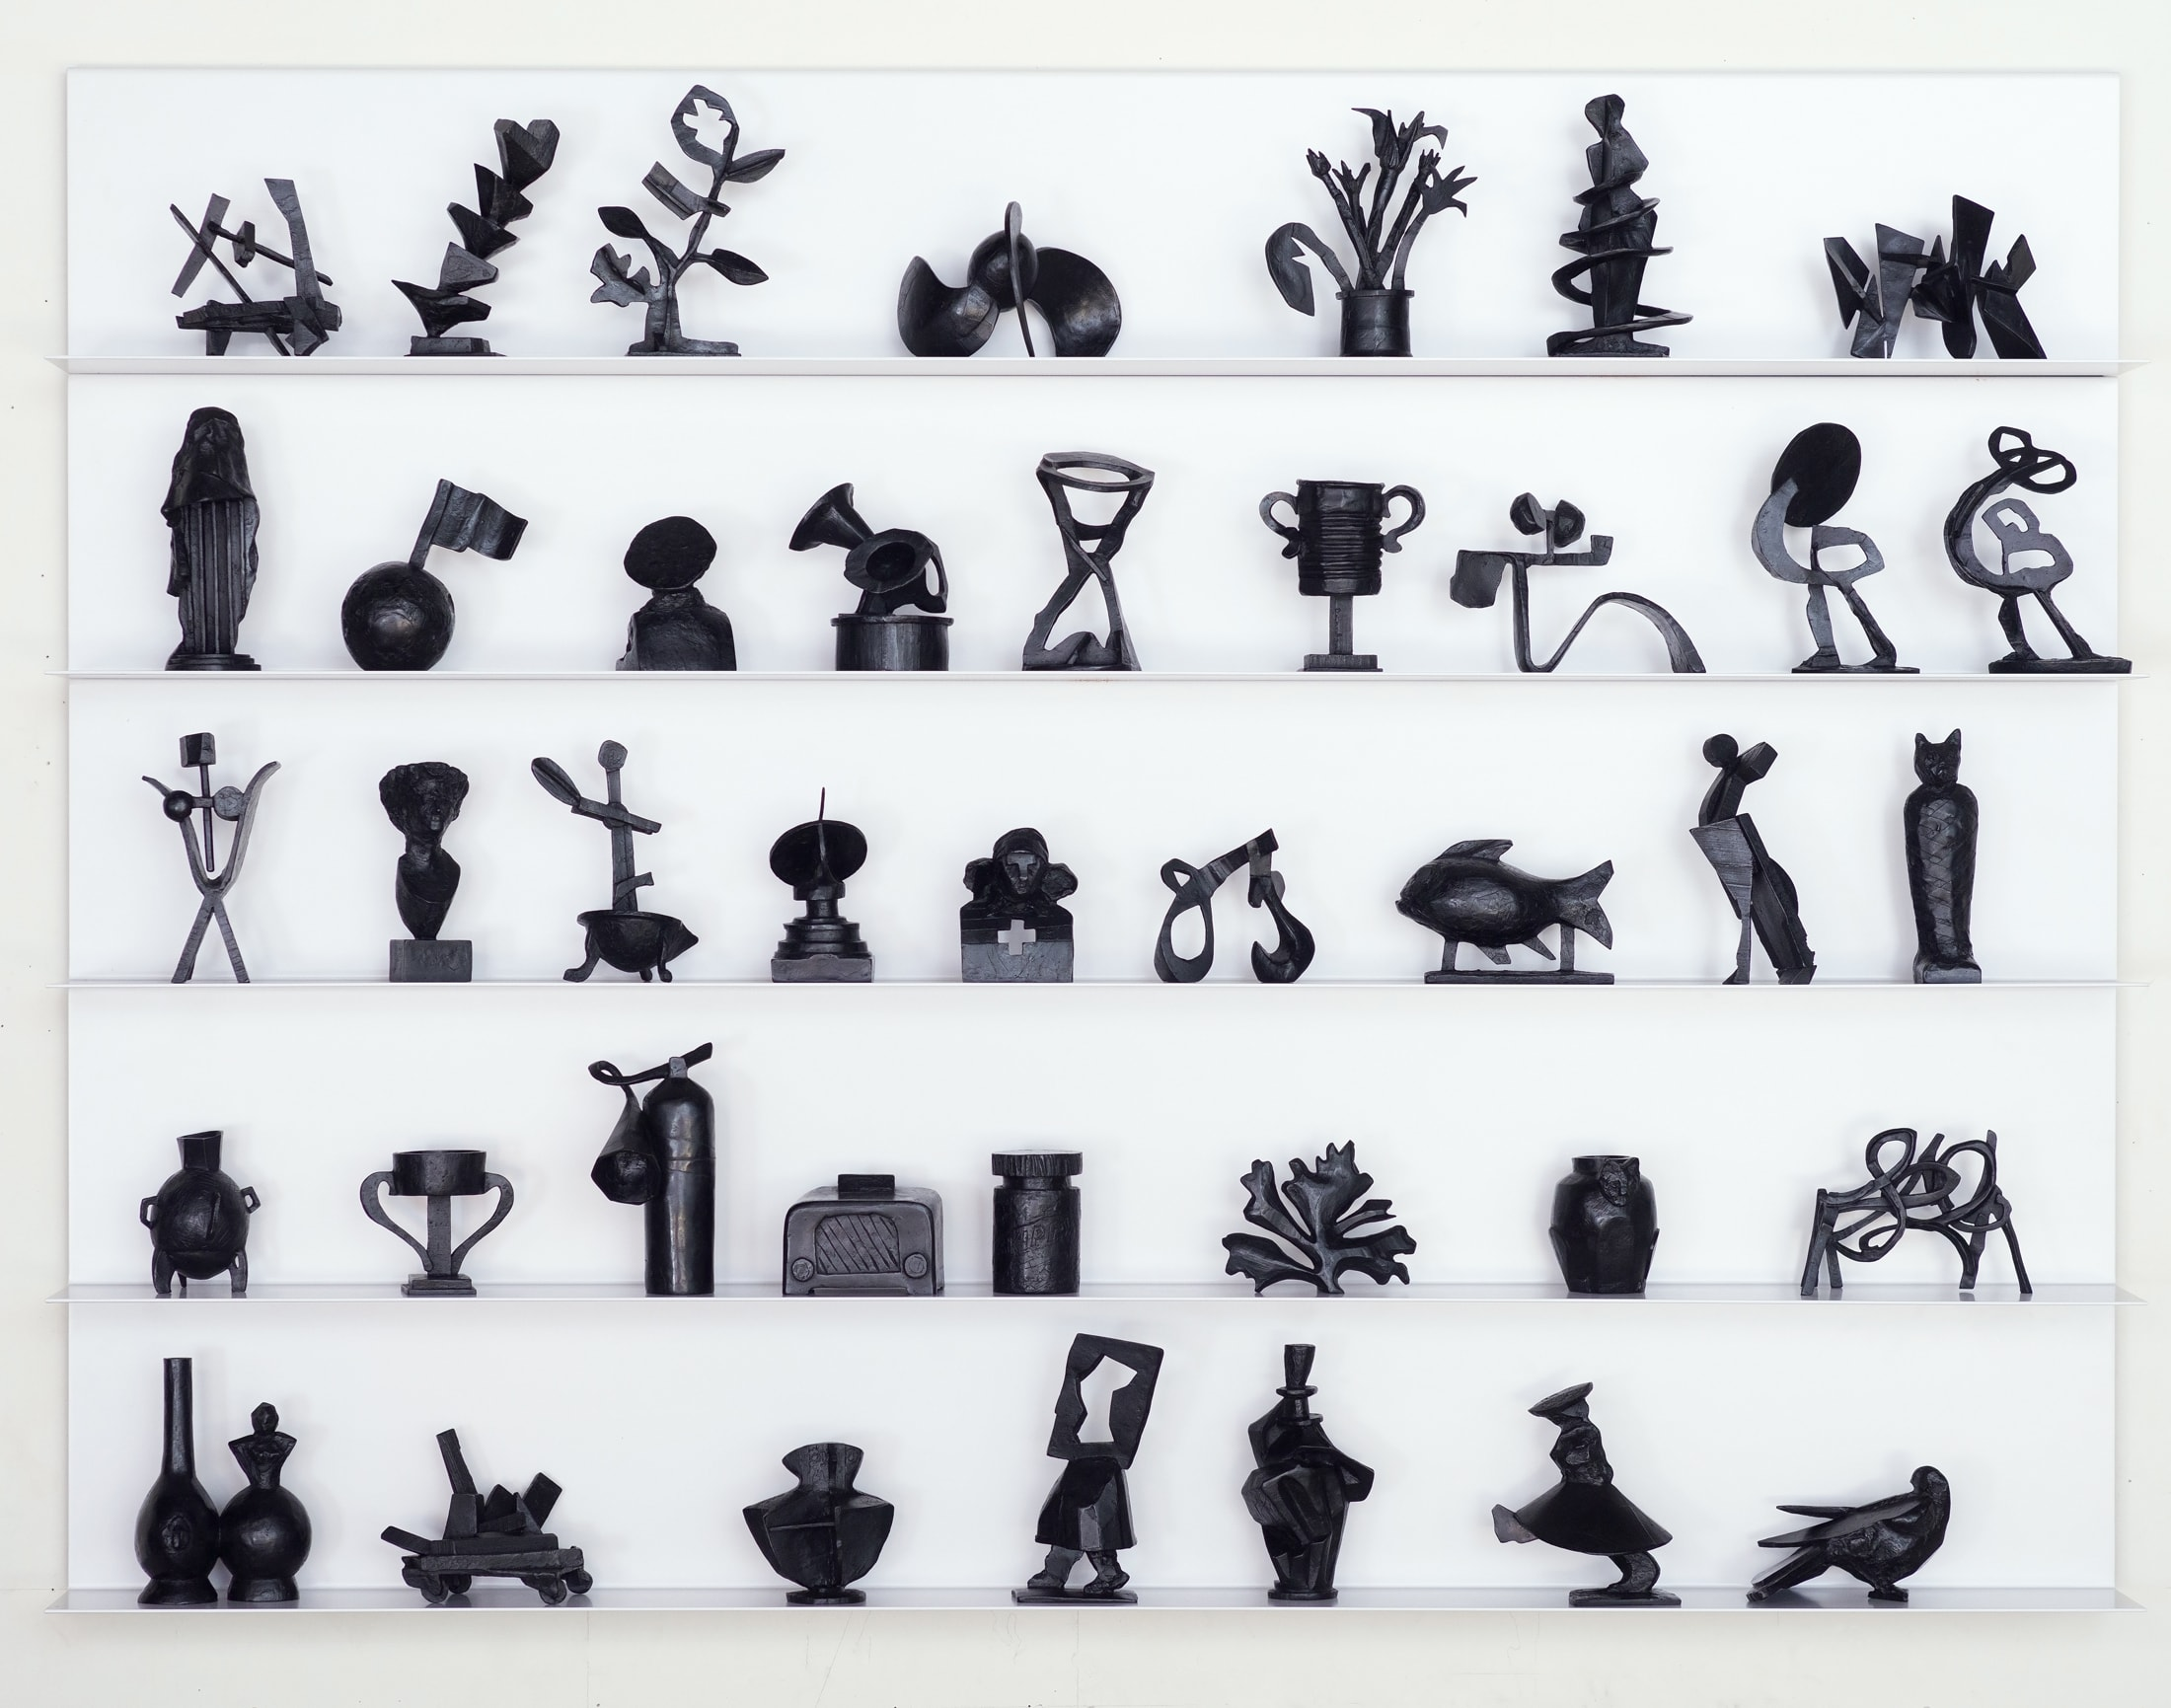 Various small sculptures by William Kentridge